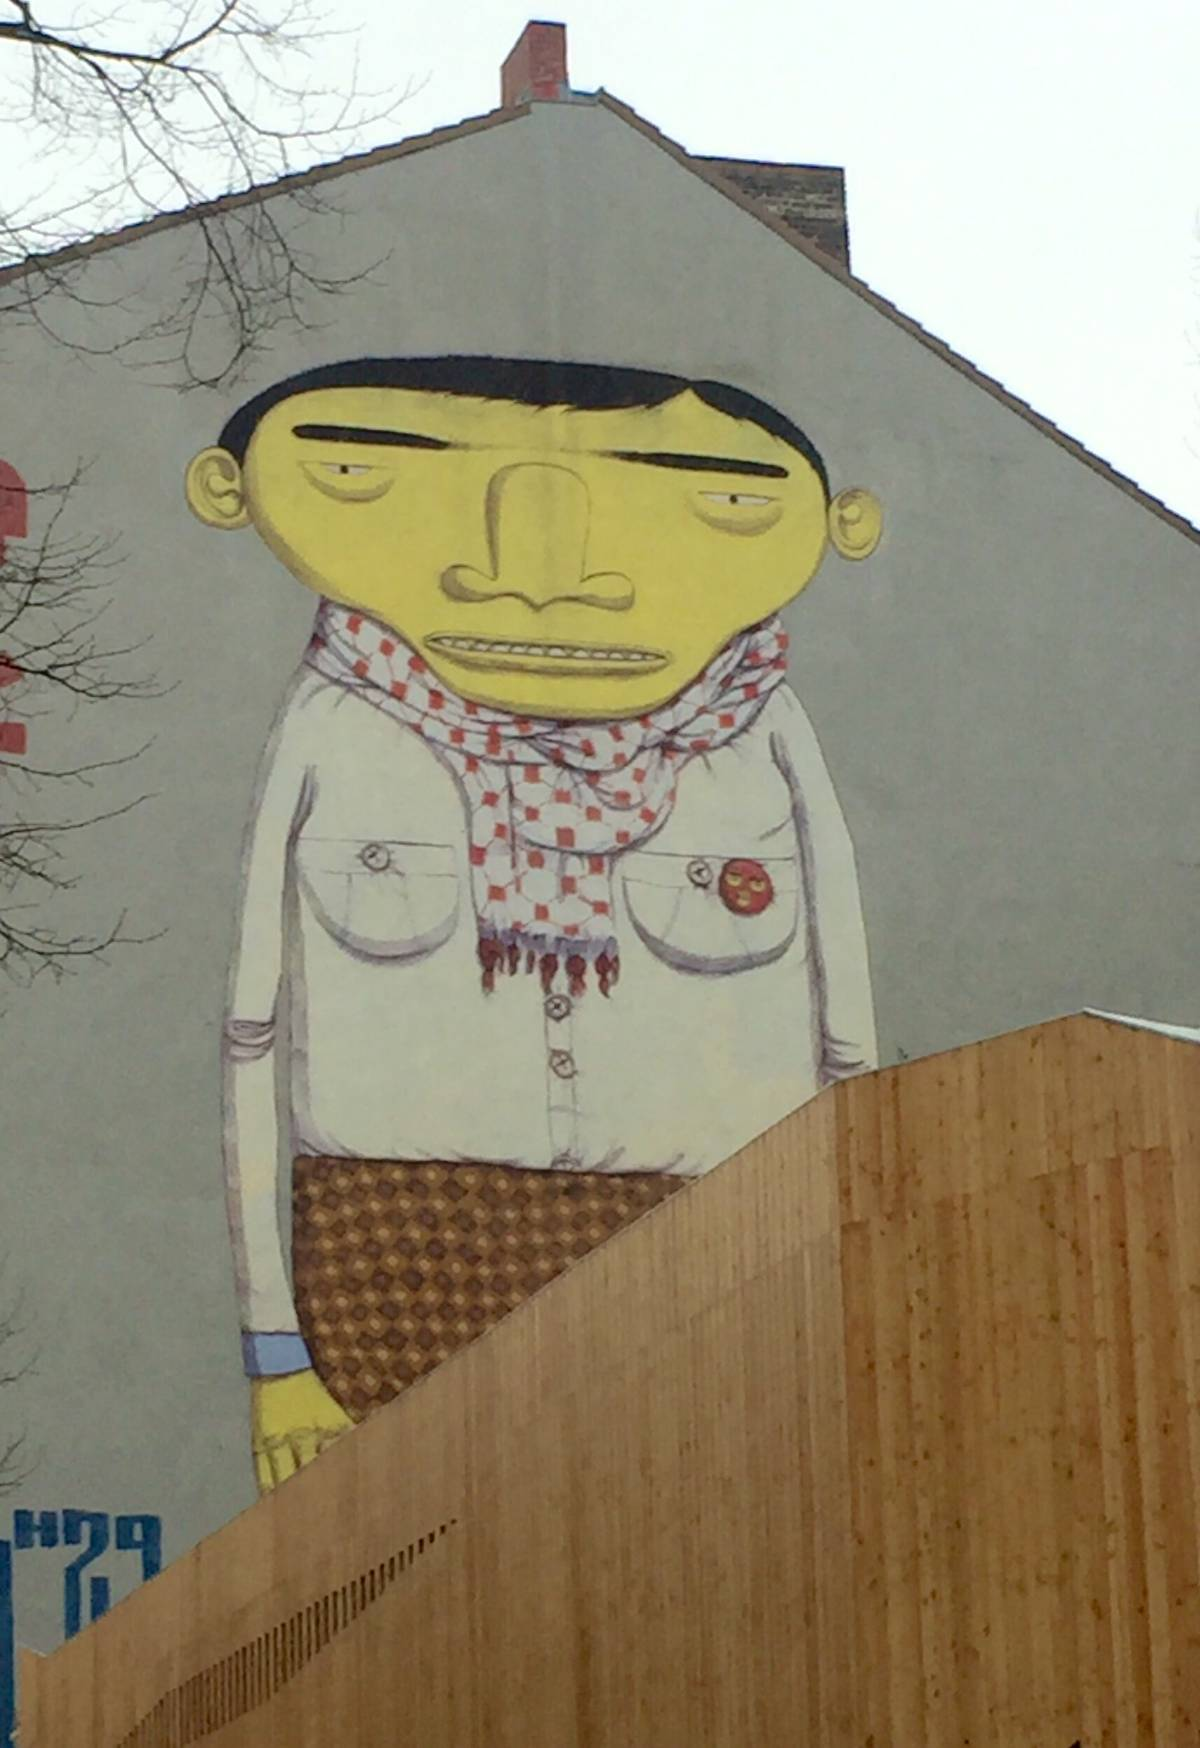 Yellow Man – Os Gemeos - street art berlino